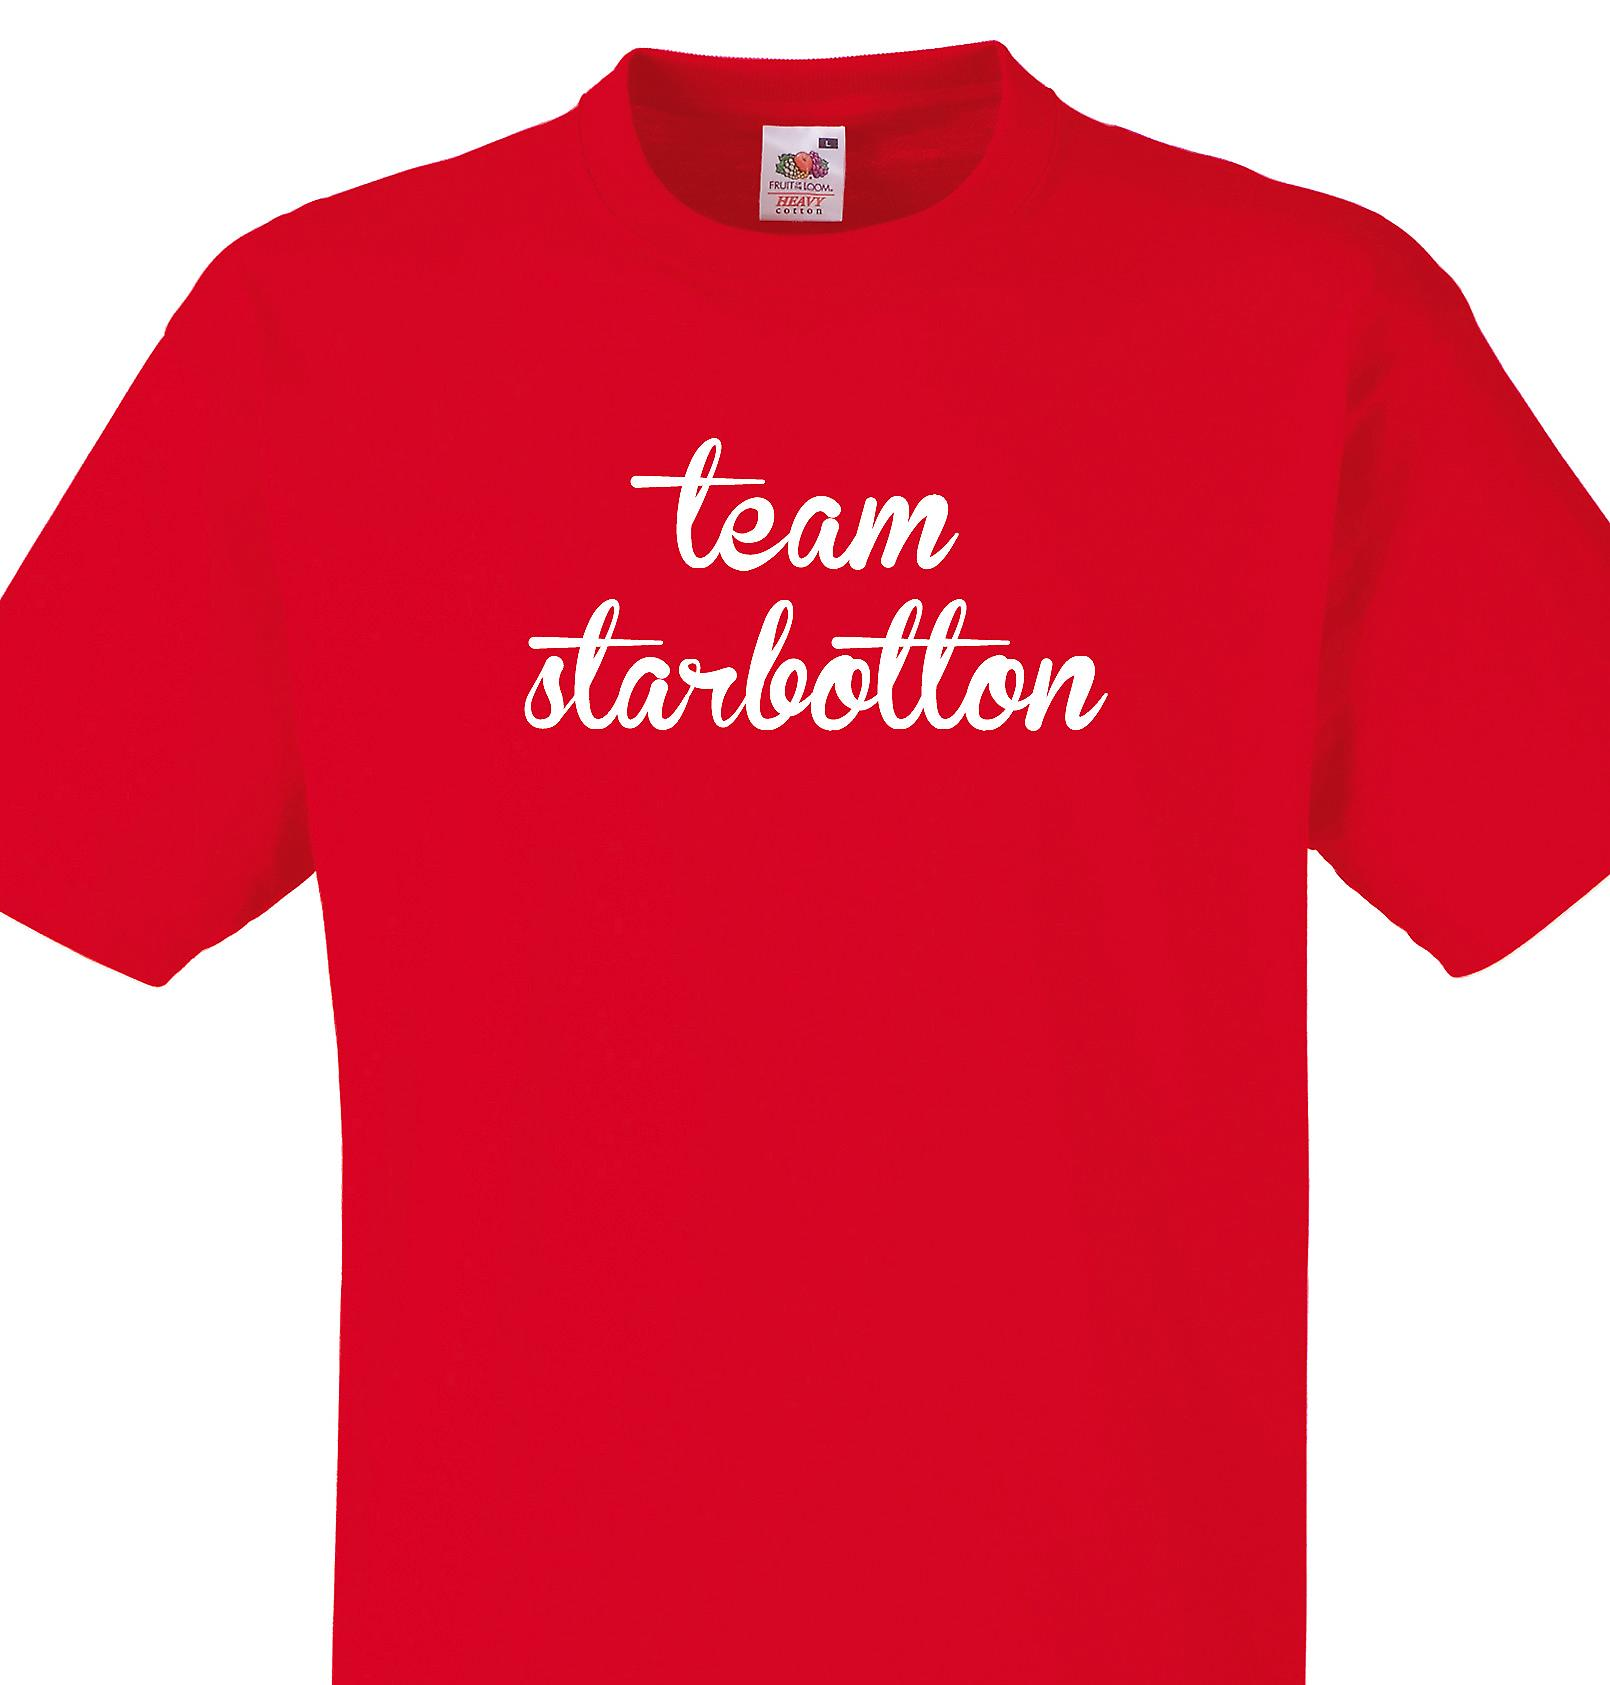 Team Starbotton Red T shirt